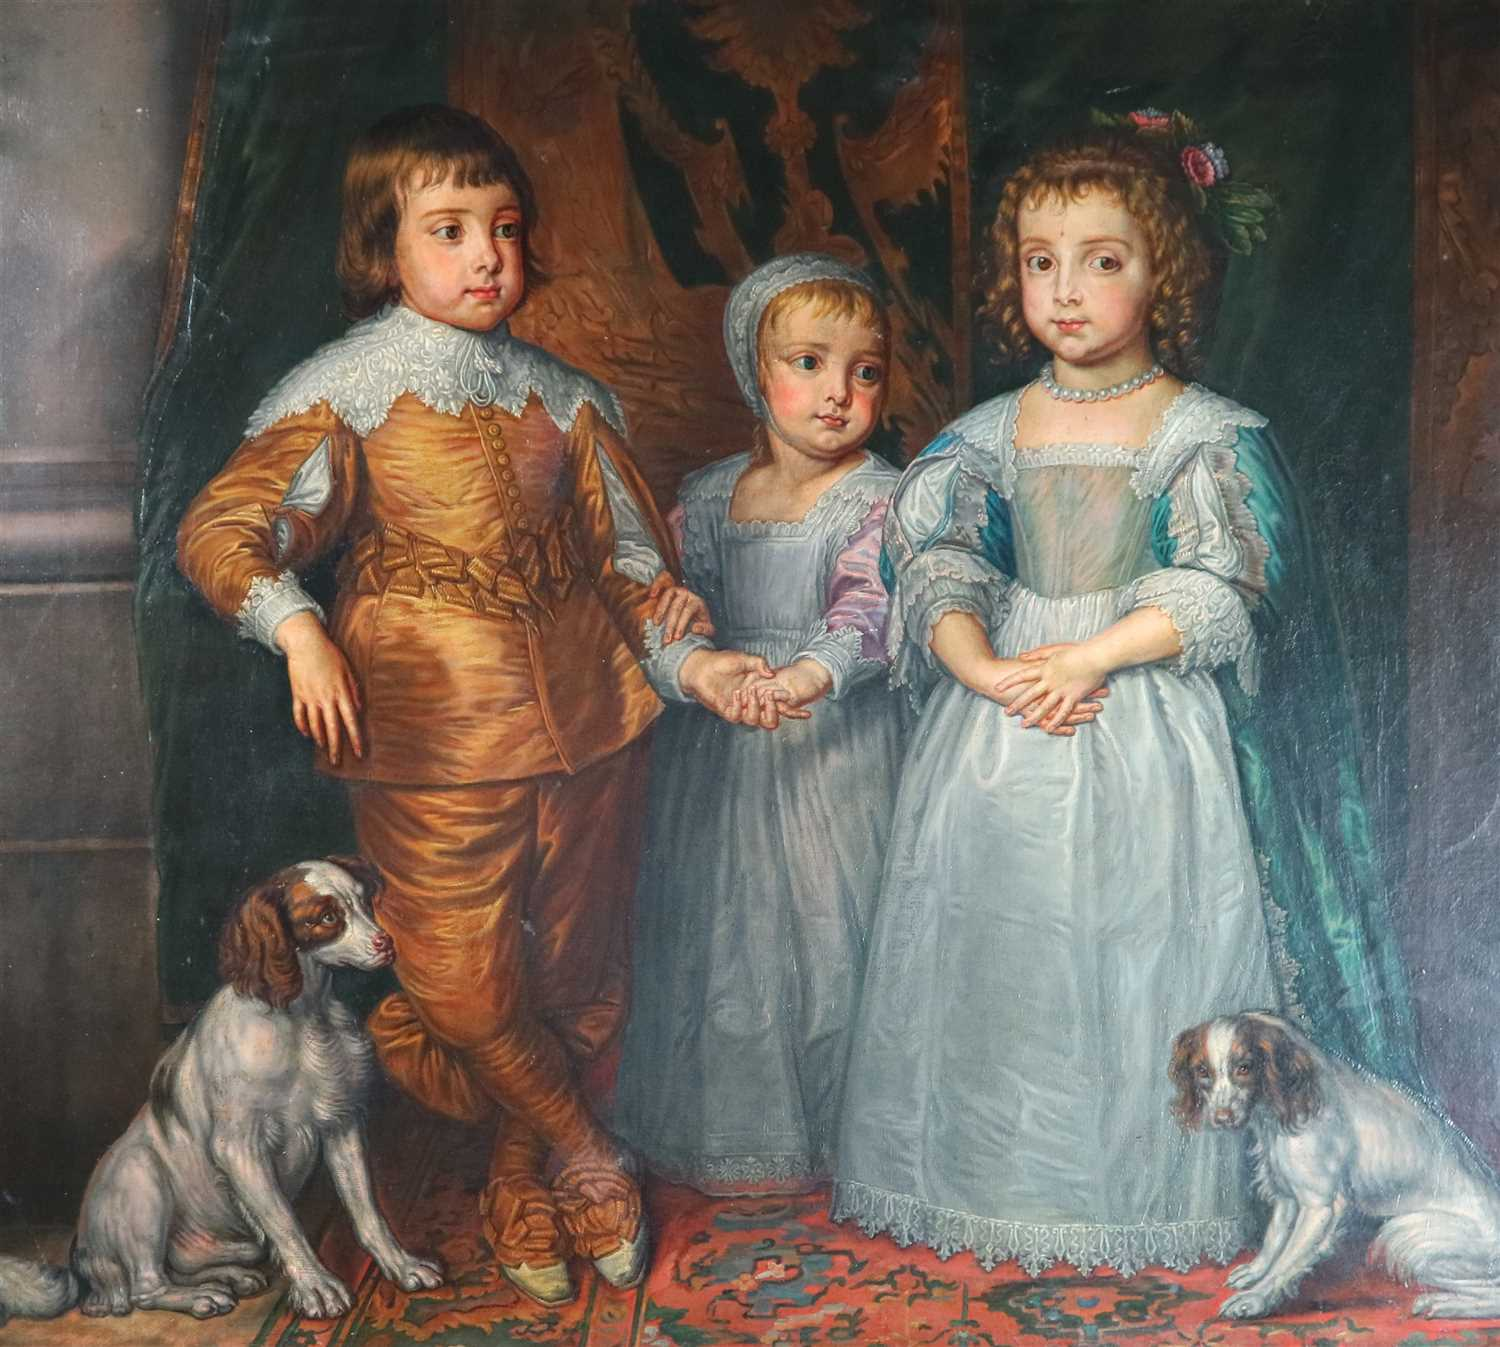 Lot 109-After Sir Anthony Van Dyck (1599-1641), The children of Charles I